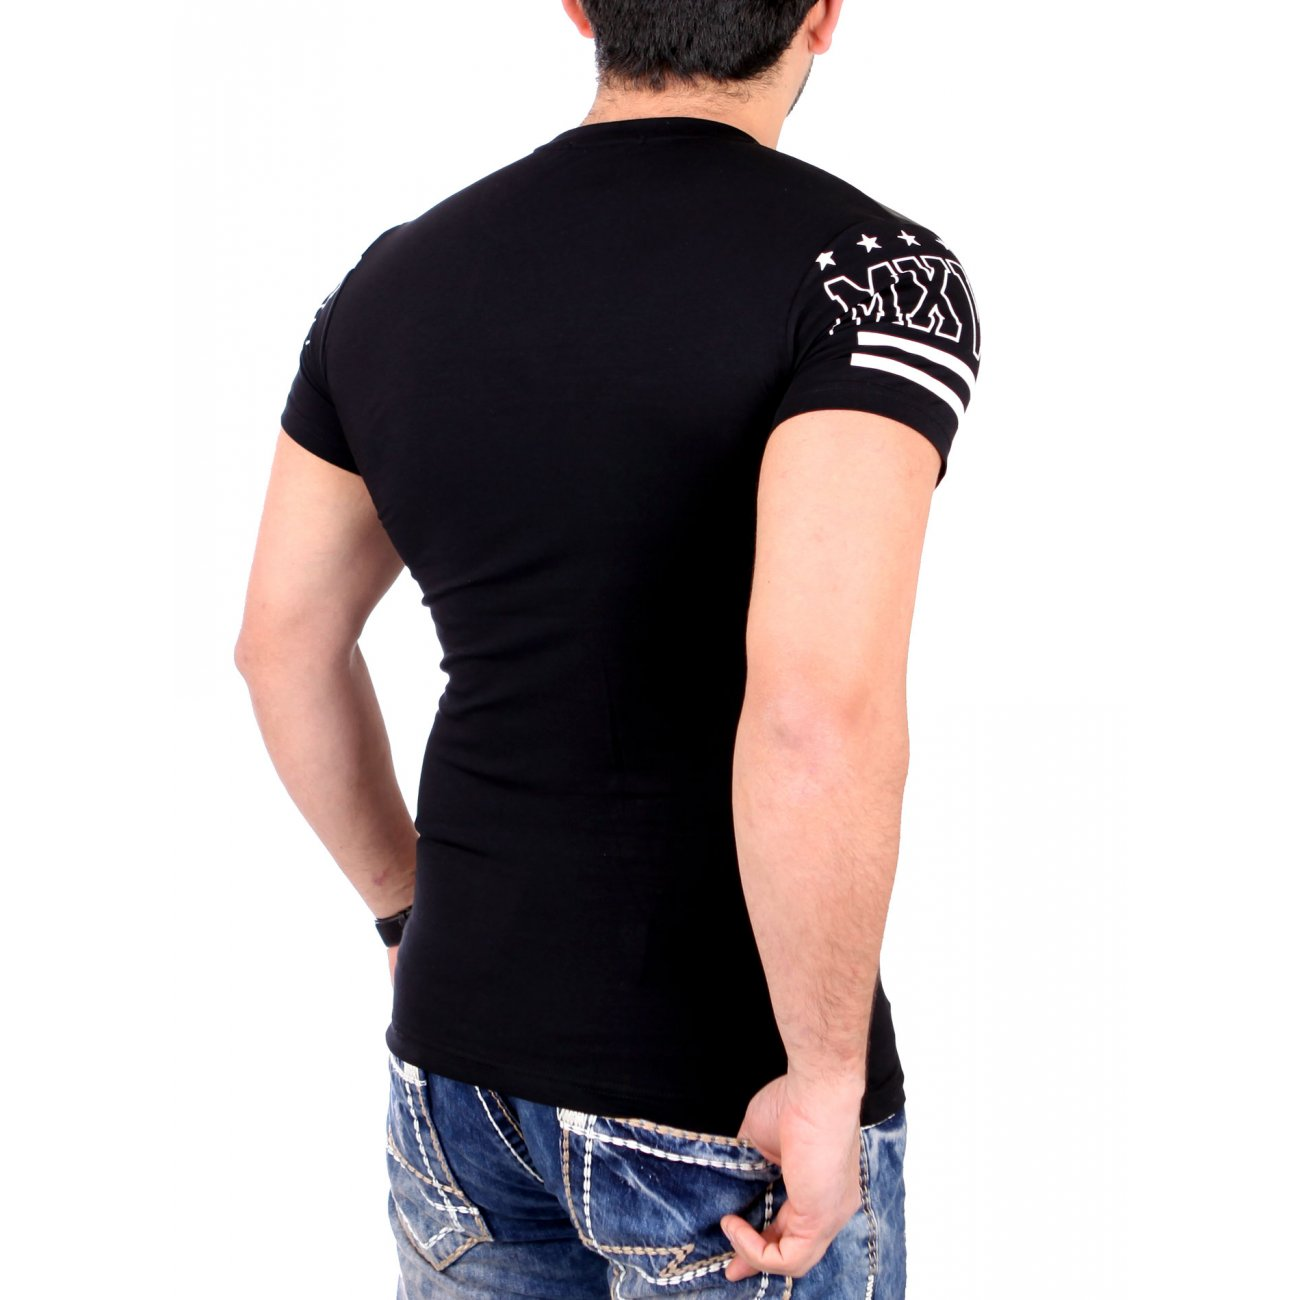 zipper t shirt rerock herren kunstleder style shirt. Black Bedroom Furniture Sets. Home Design Ideas